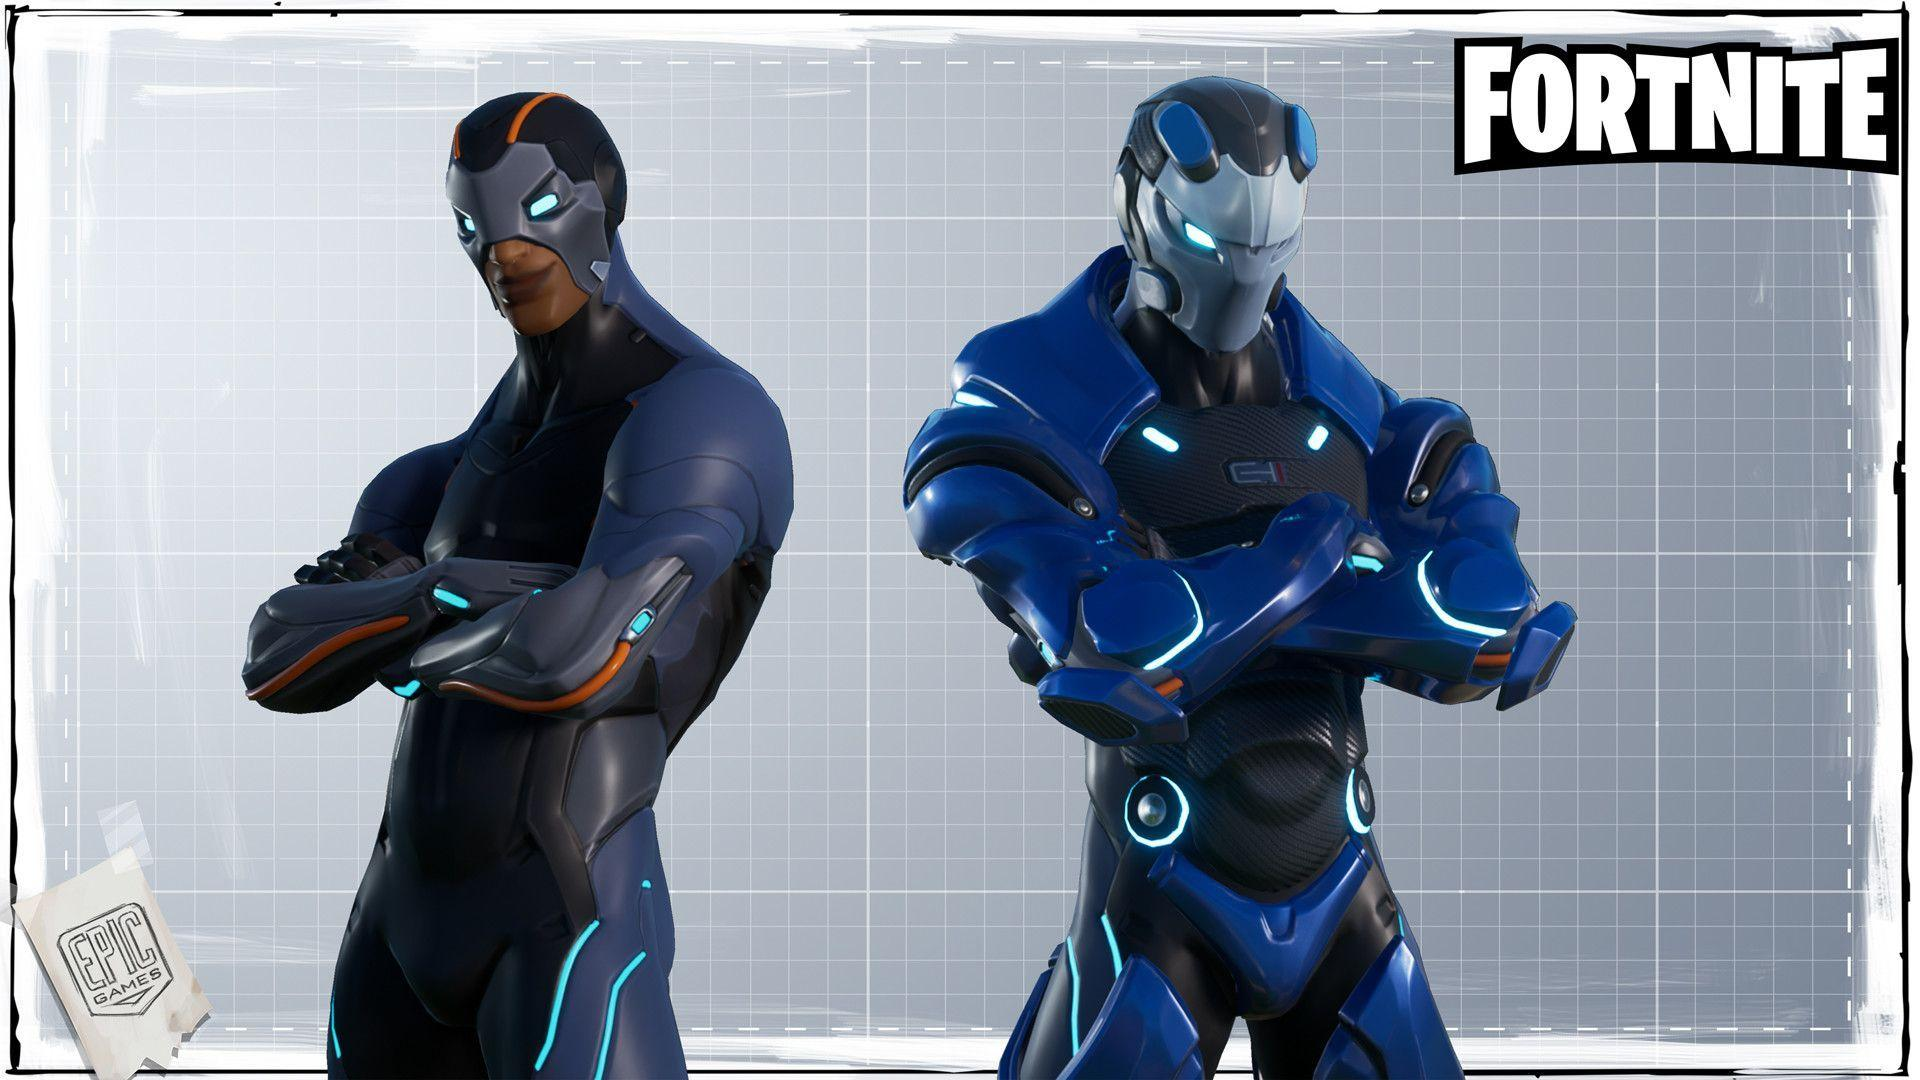 ArtStation - Fortnite - Carbide, Harrison Moore | Other | Pinterest ...